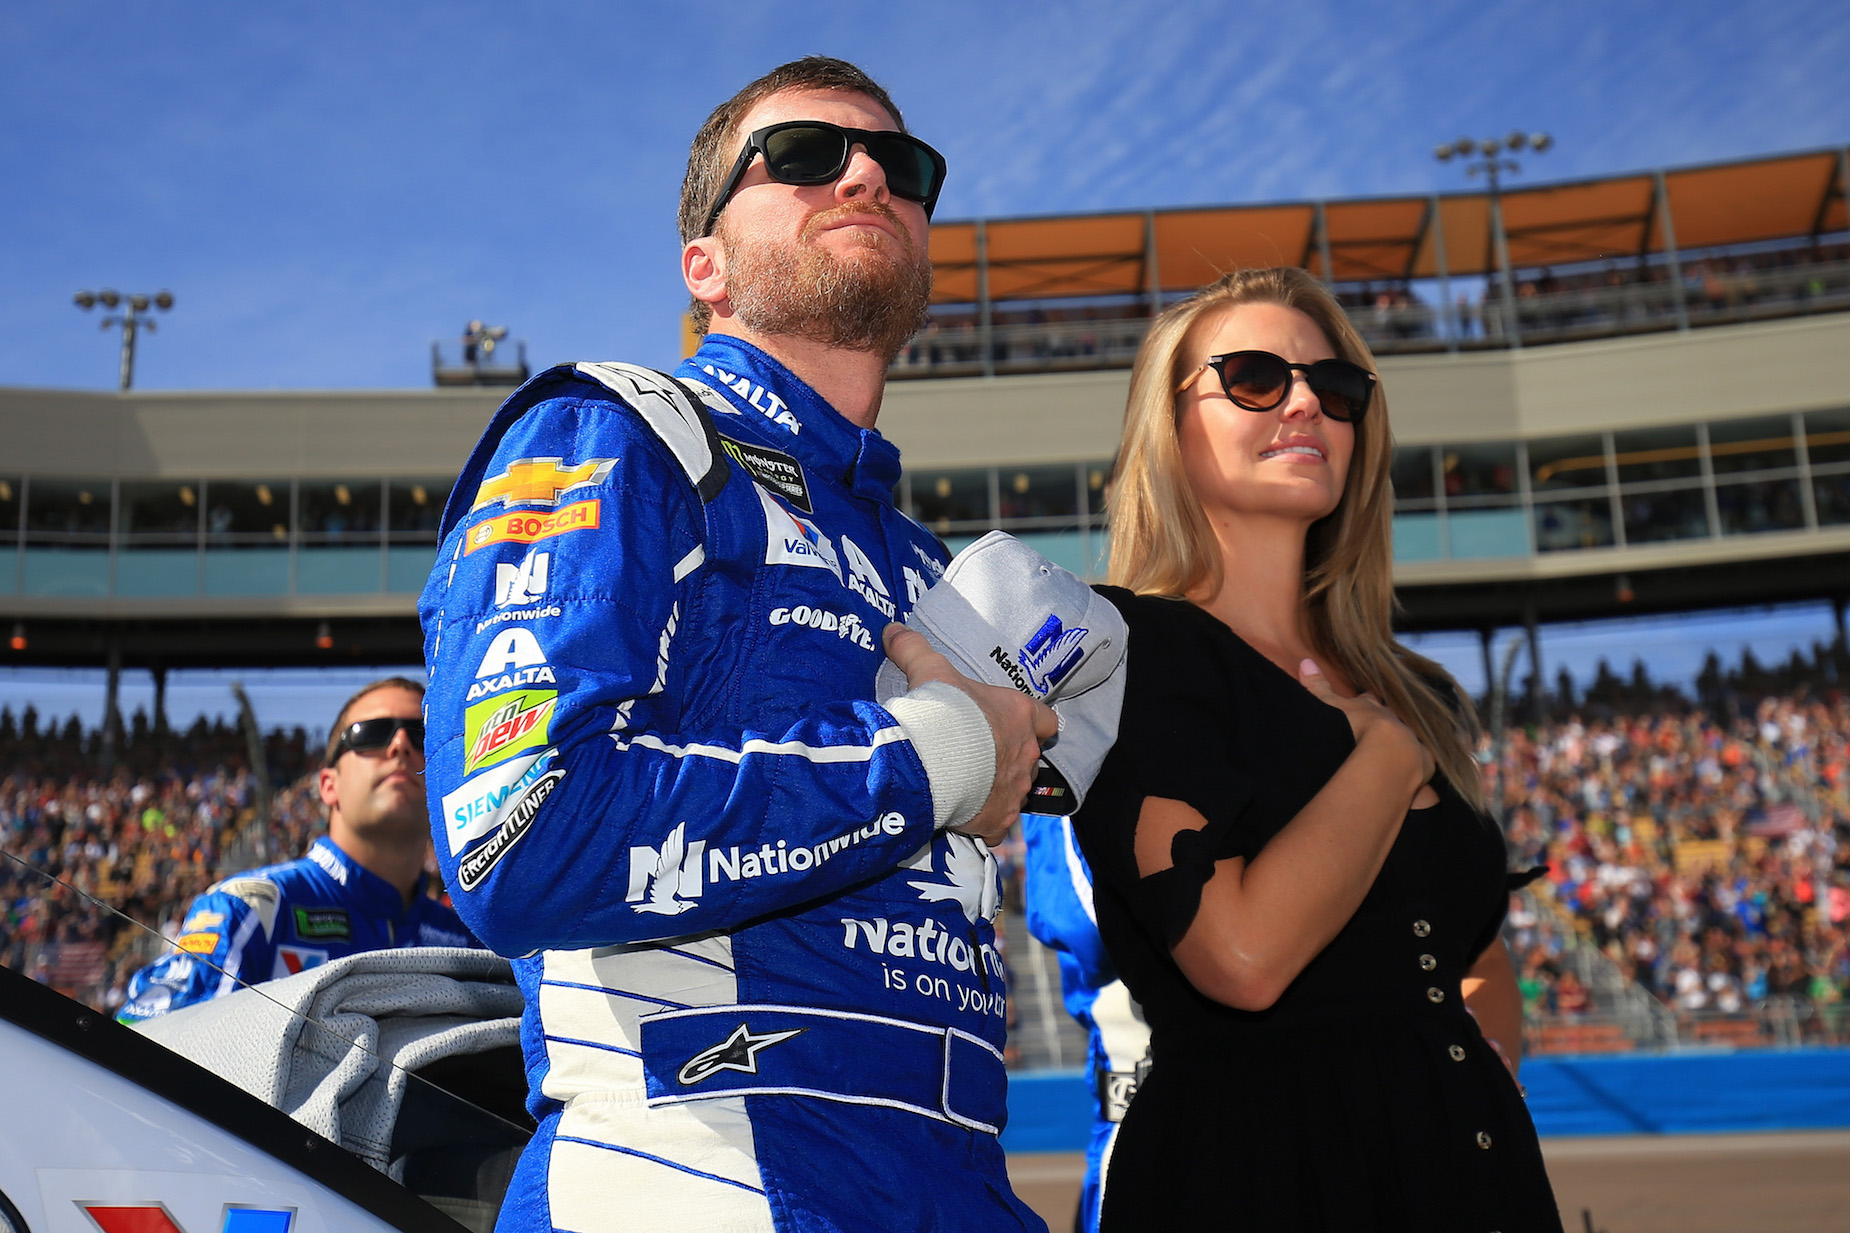 Dale Earnhardt Jr. worried that he ruined his relationship with his wife after a drunken go-karting accident.